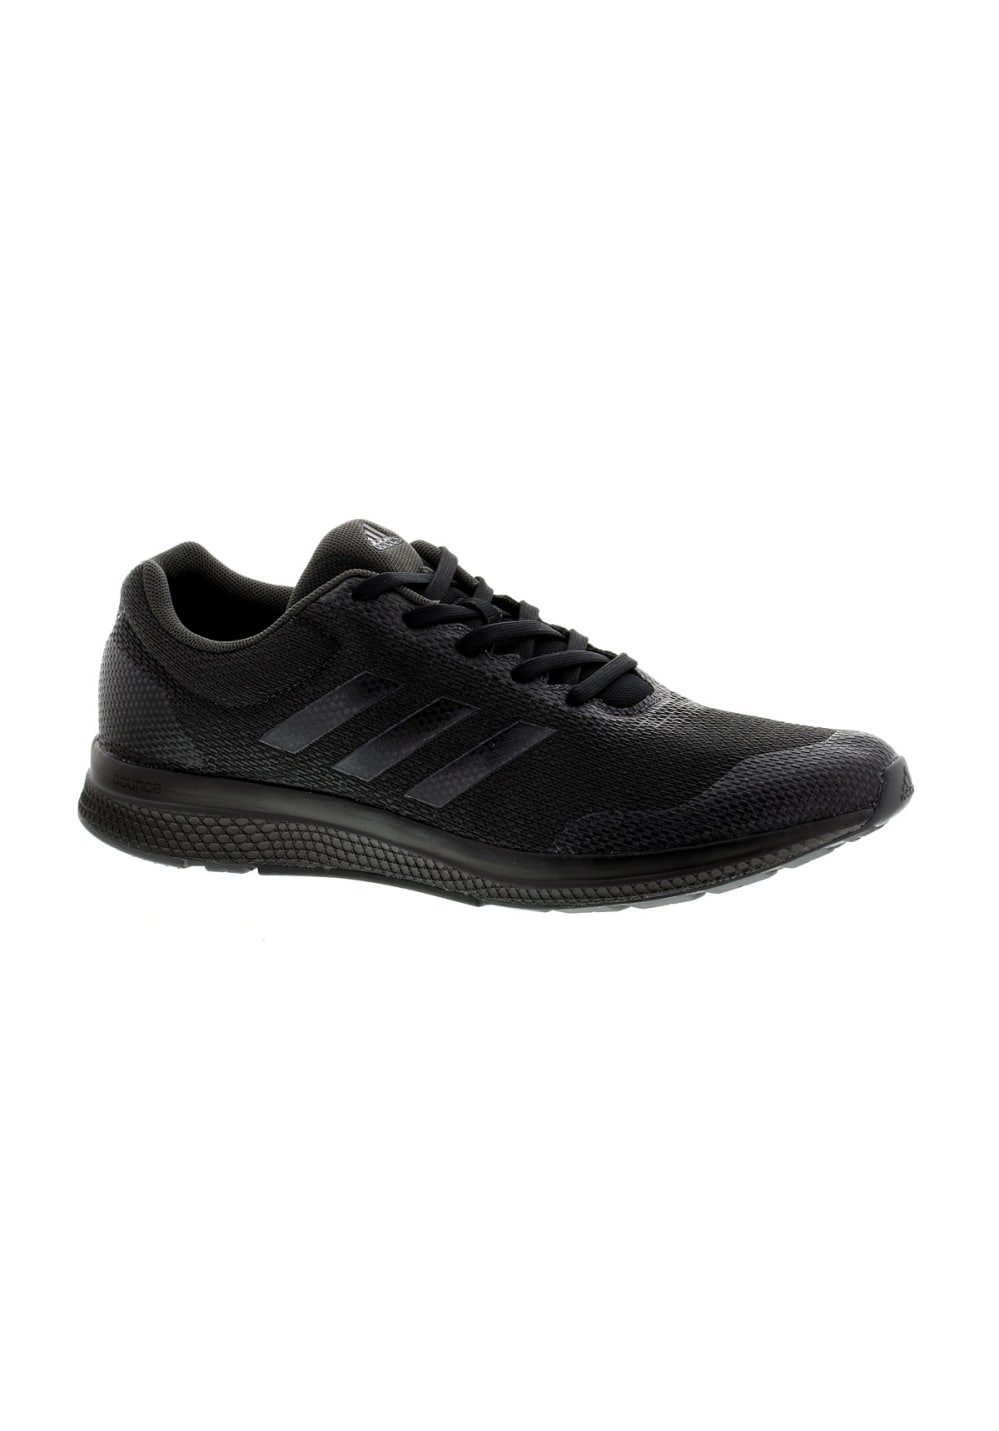 adidas Mana Bounce 2 Aramis Chaussures running pour Homme Noir